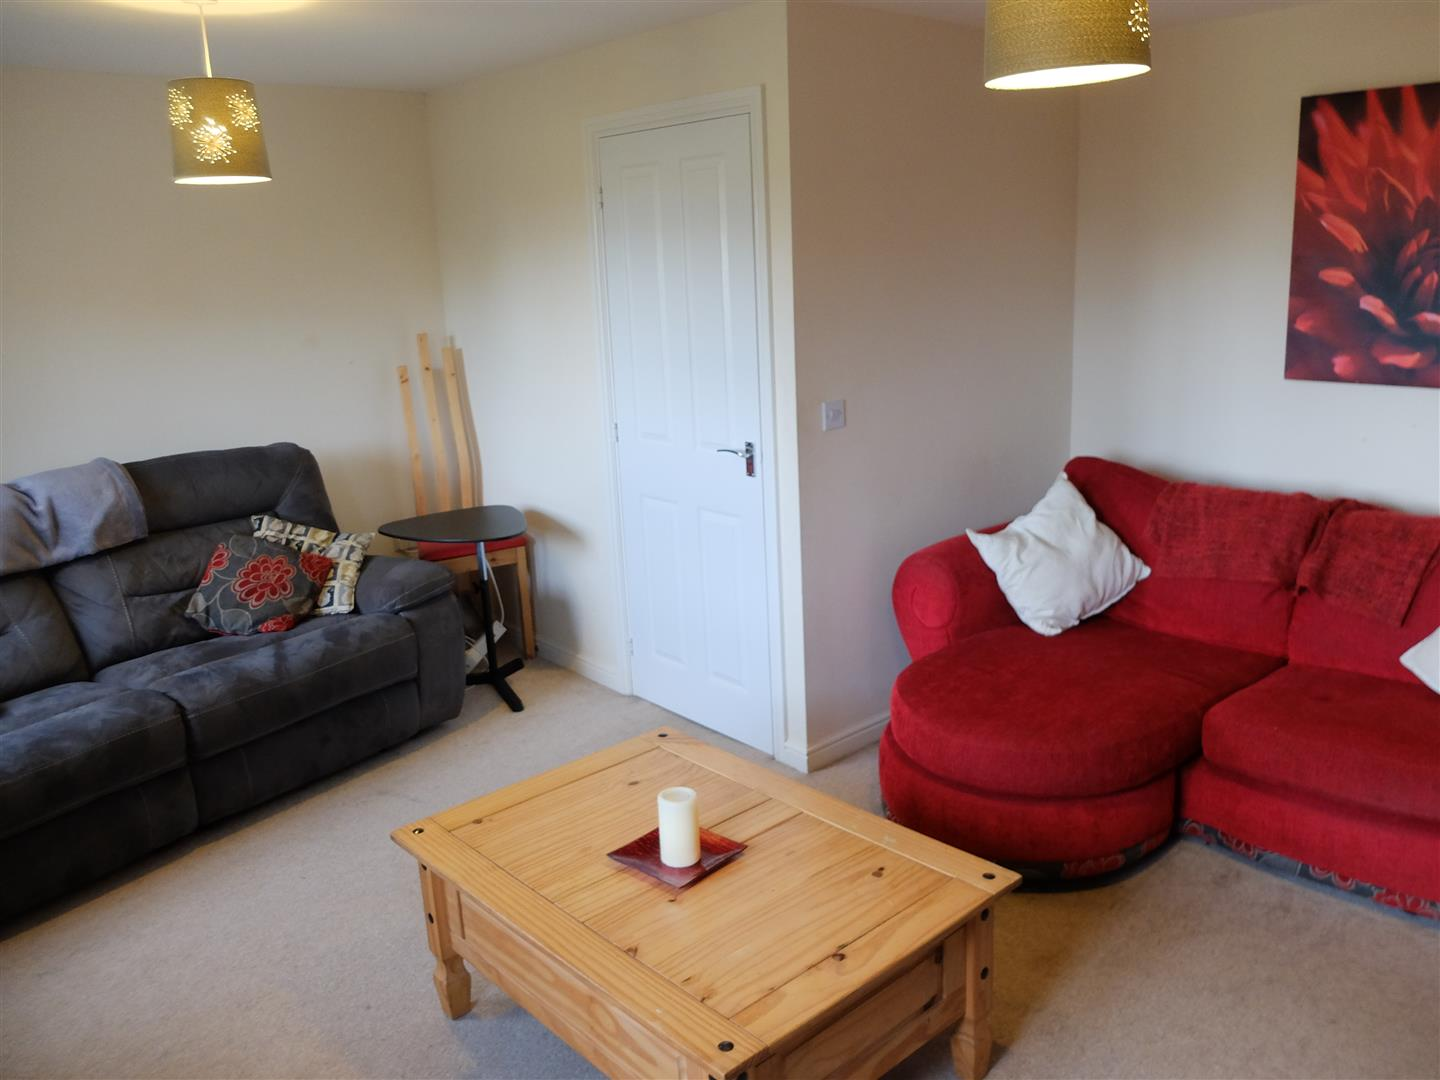 8 Barley Edge Carlisle 4 Bedrooms House - Mid Terrace For Sale 160,000